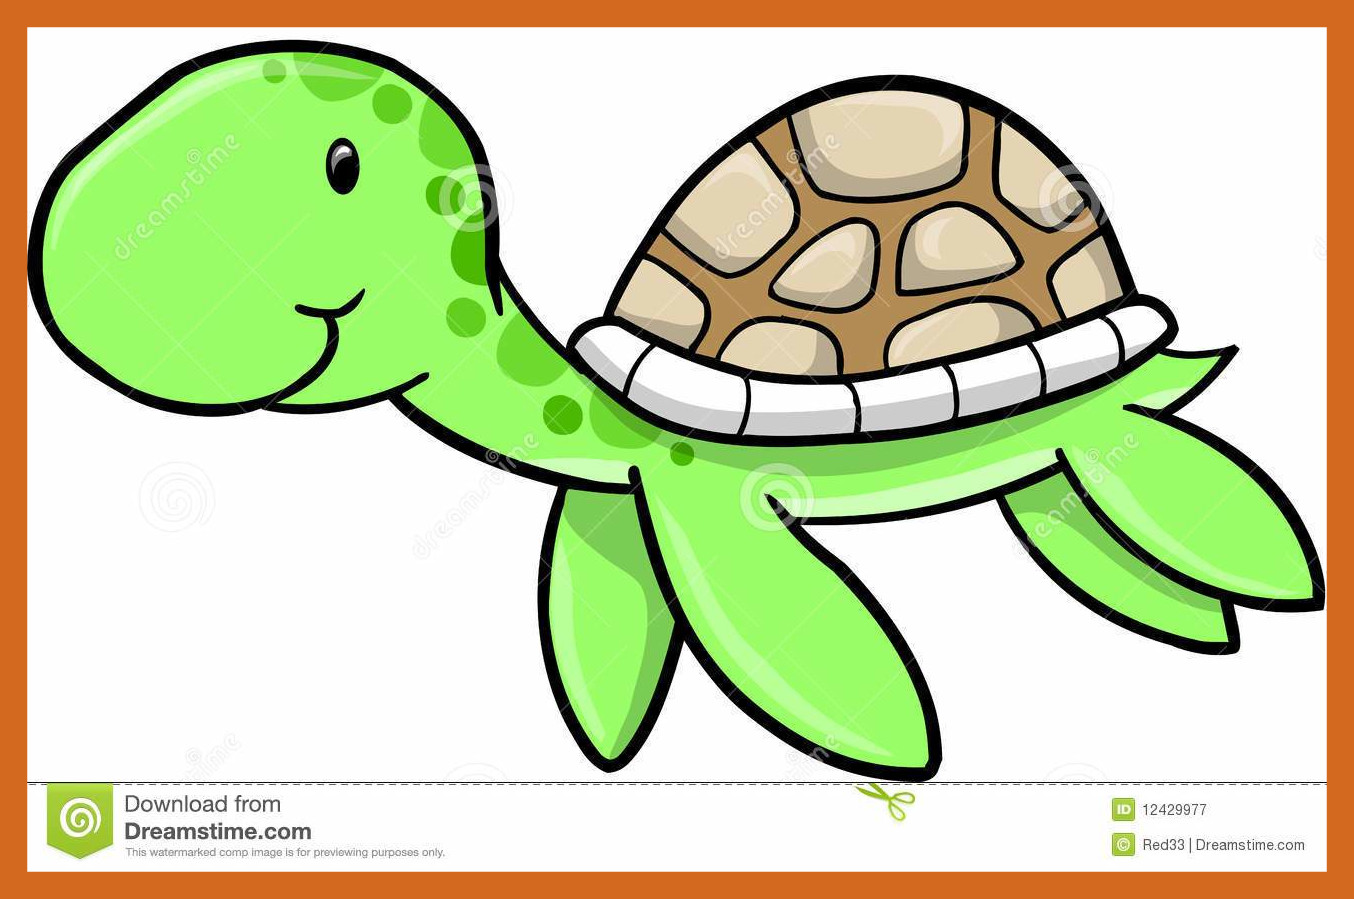 Box Turtle Clipart at GetDrawings.com.